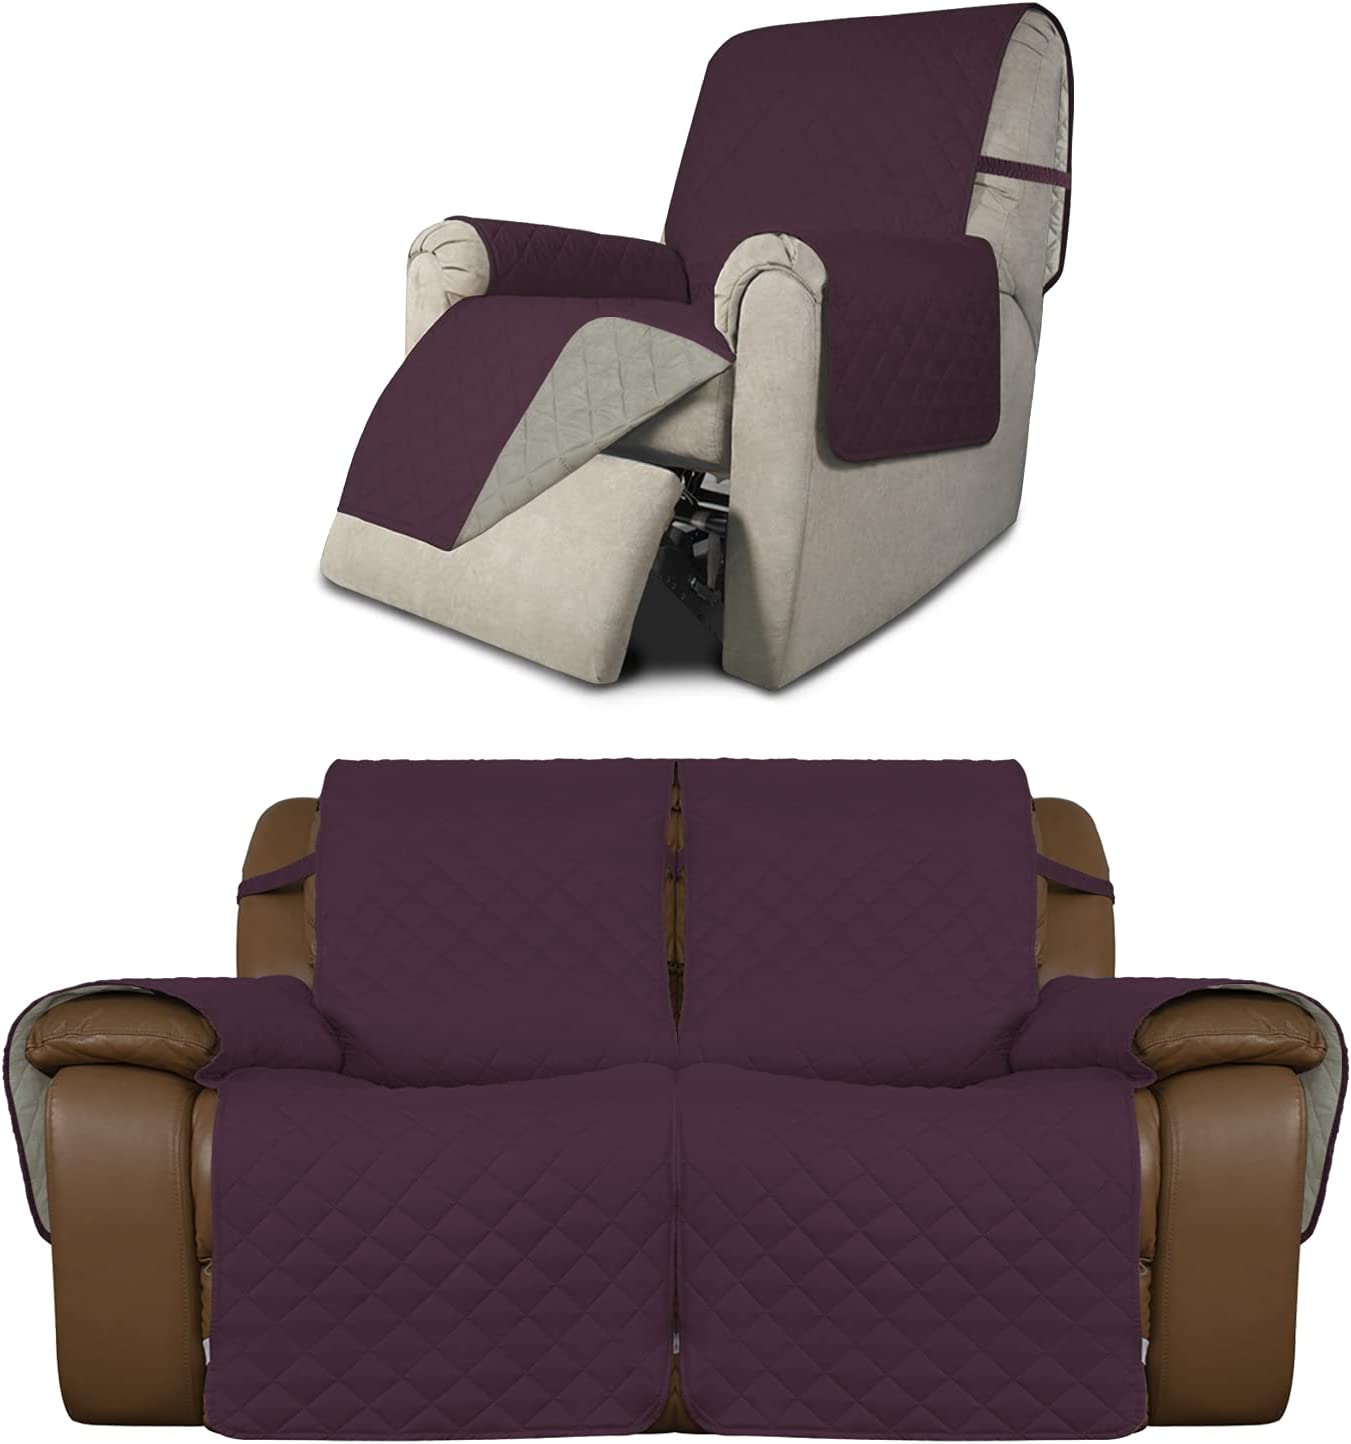 Easy-Going Product Bundles Reversible Recliner Max 73% OFF Cover,Lov Chair Inventory cleanup selling sale